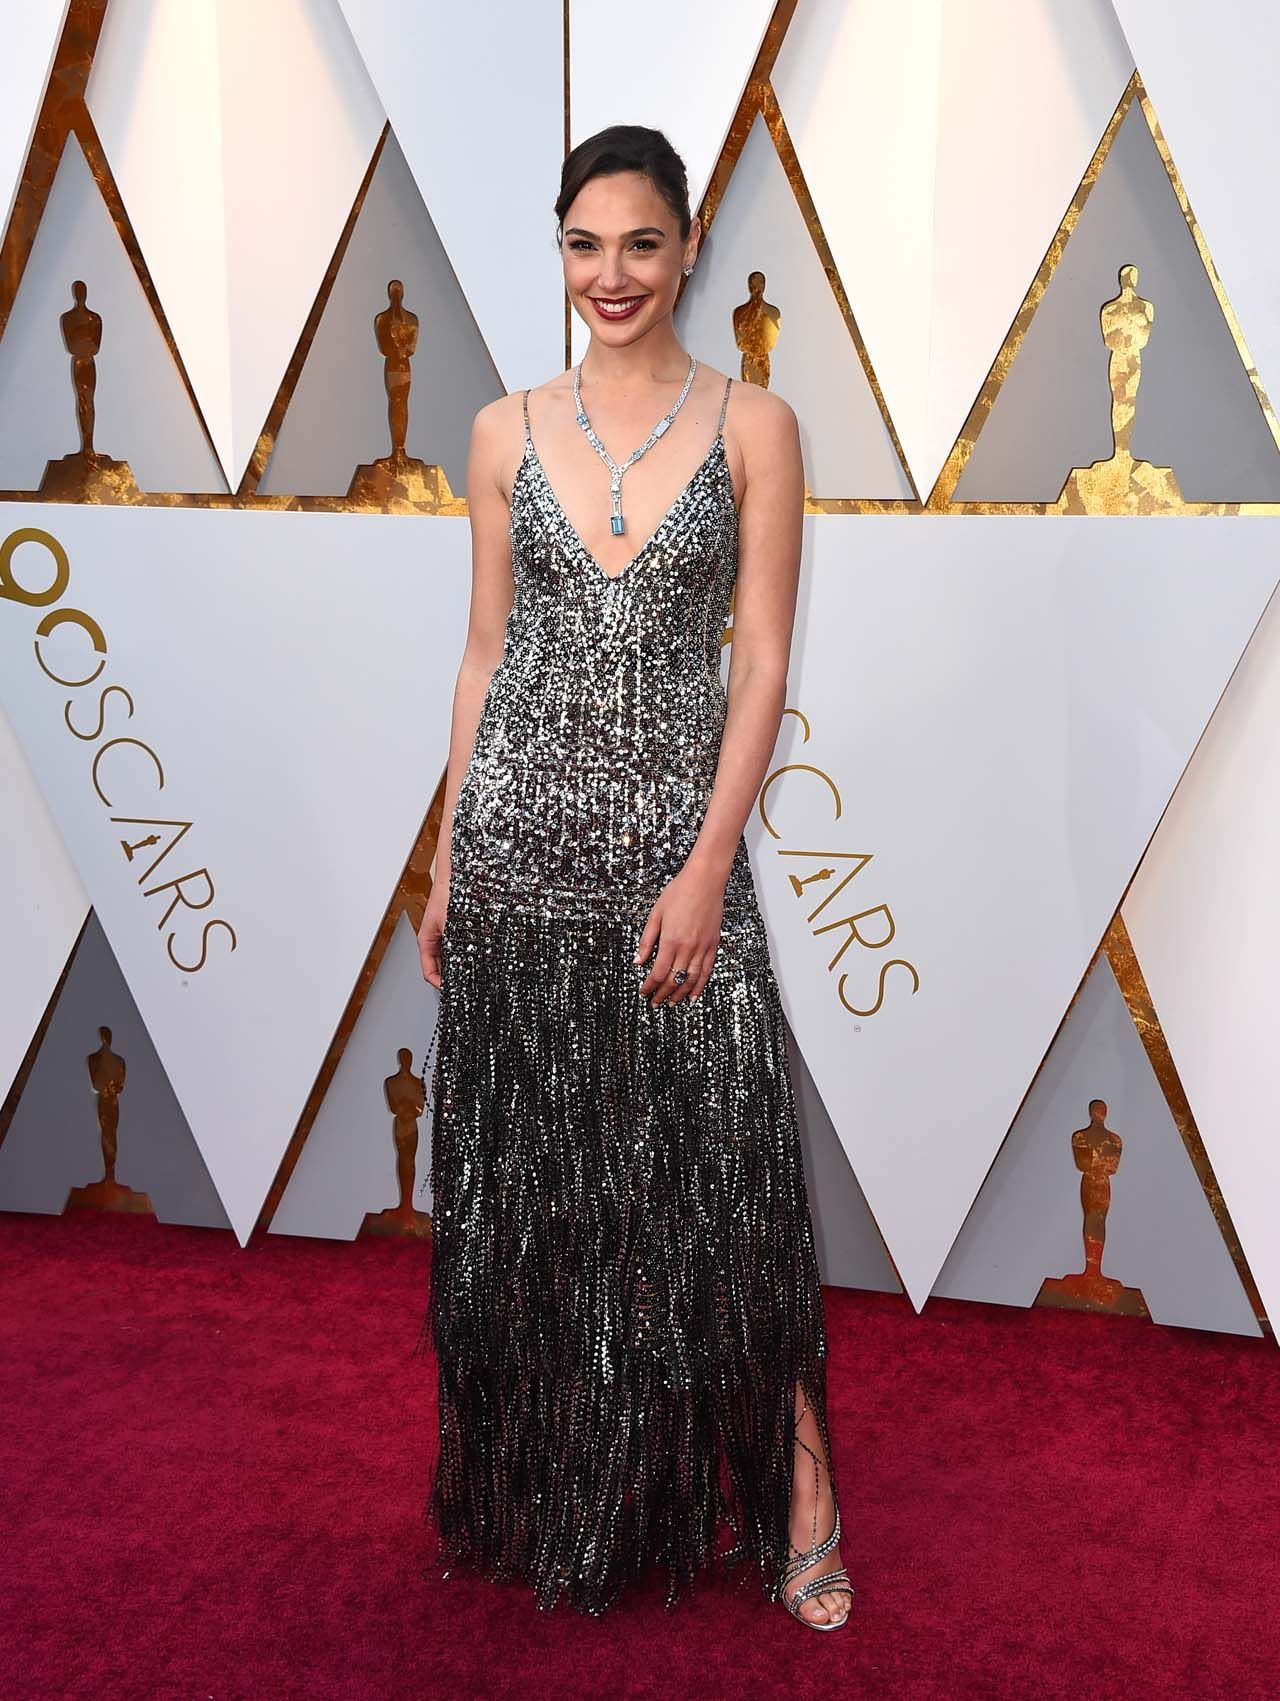 Gal Gadot at the 90th Annual Academy Awards.